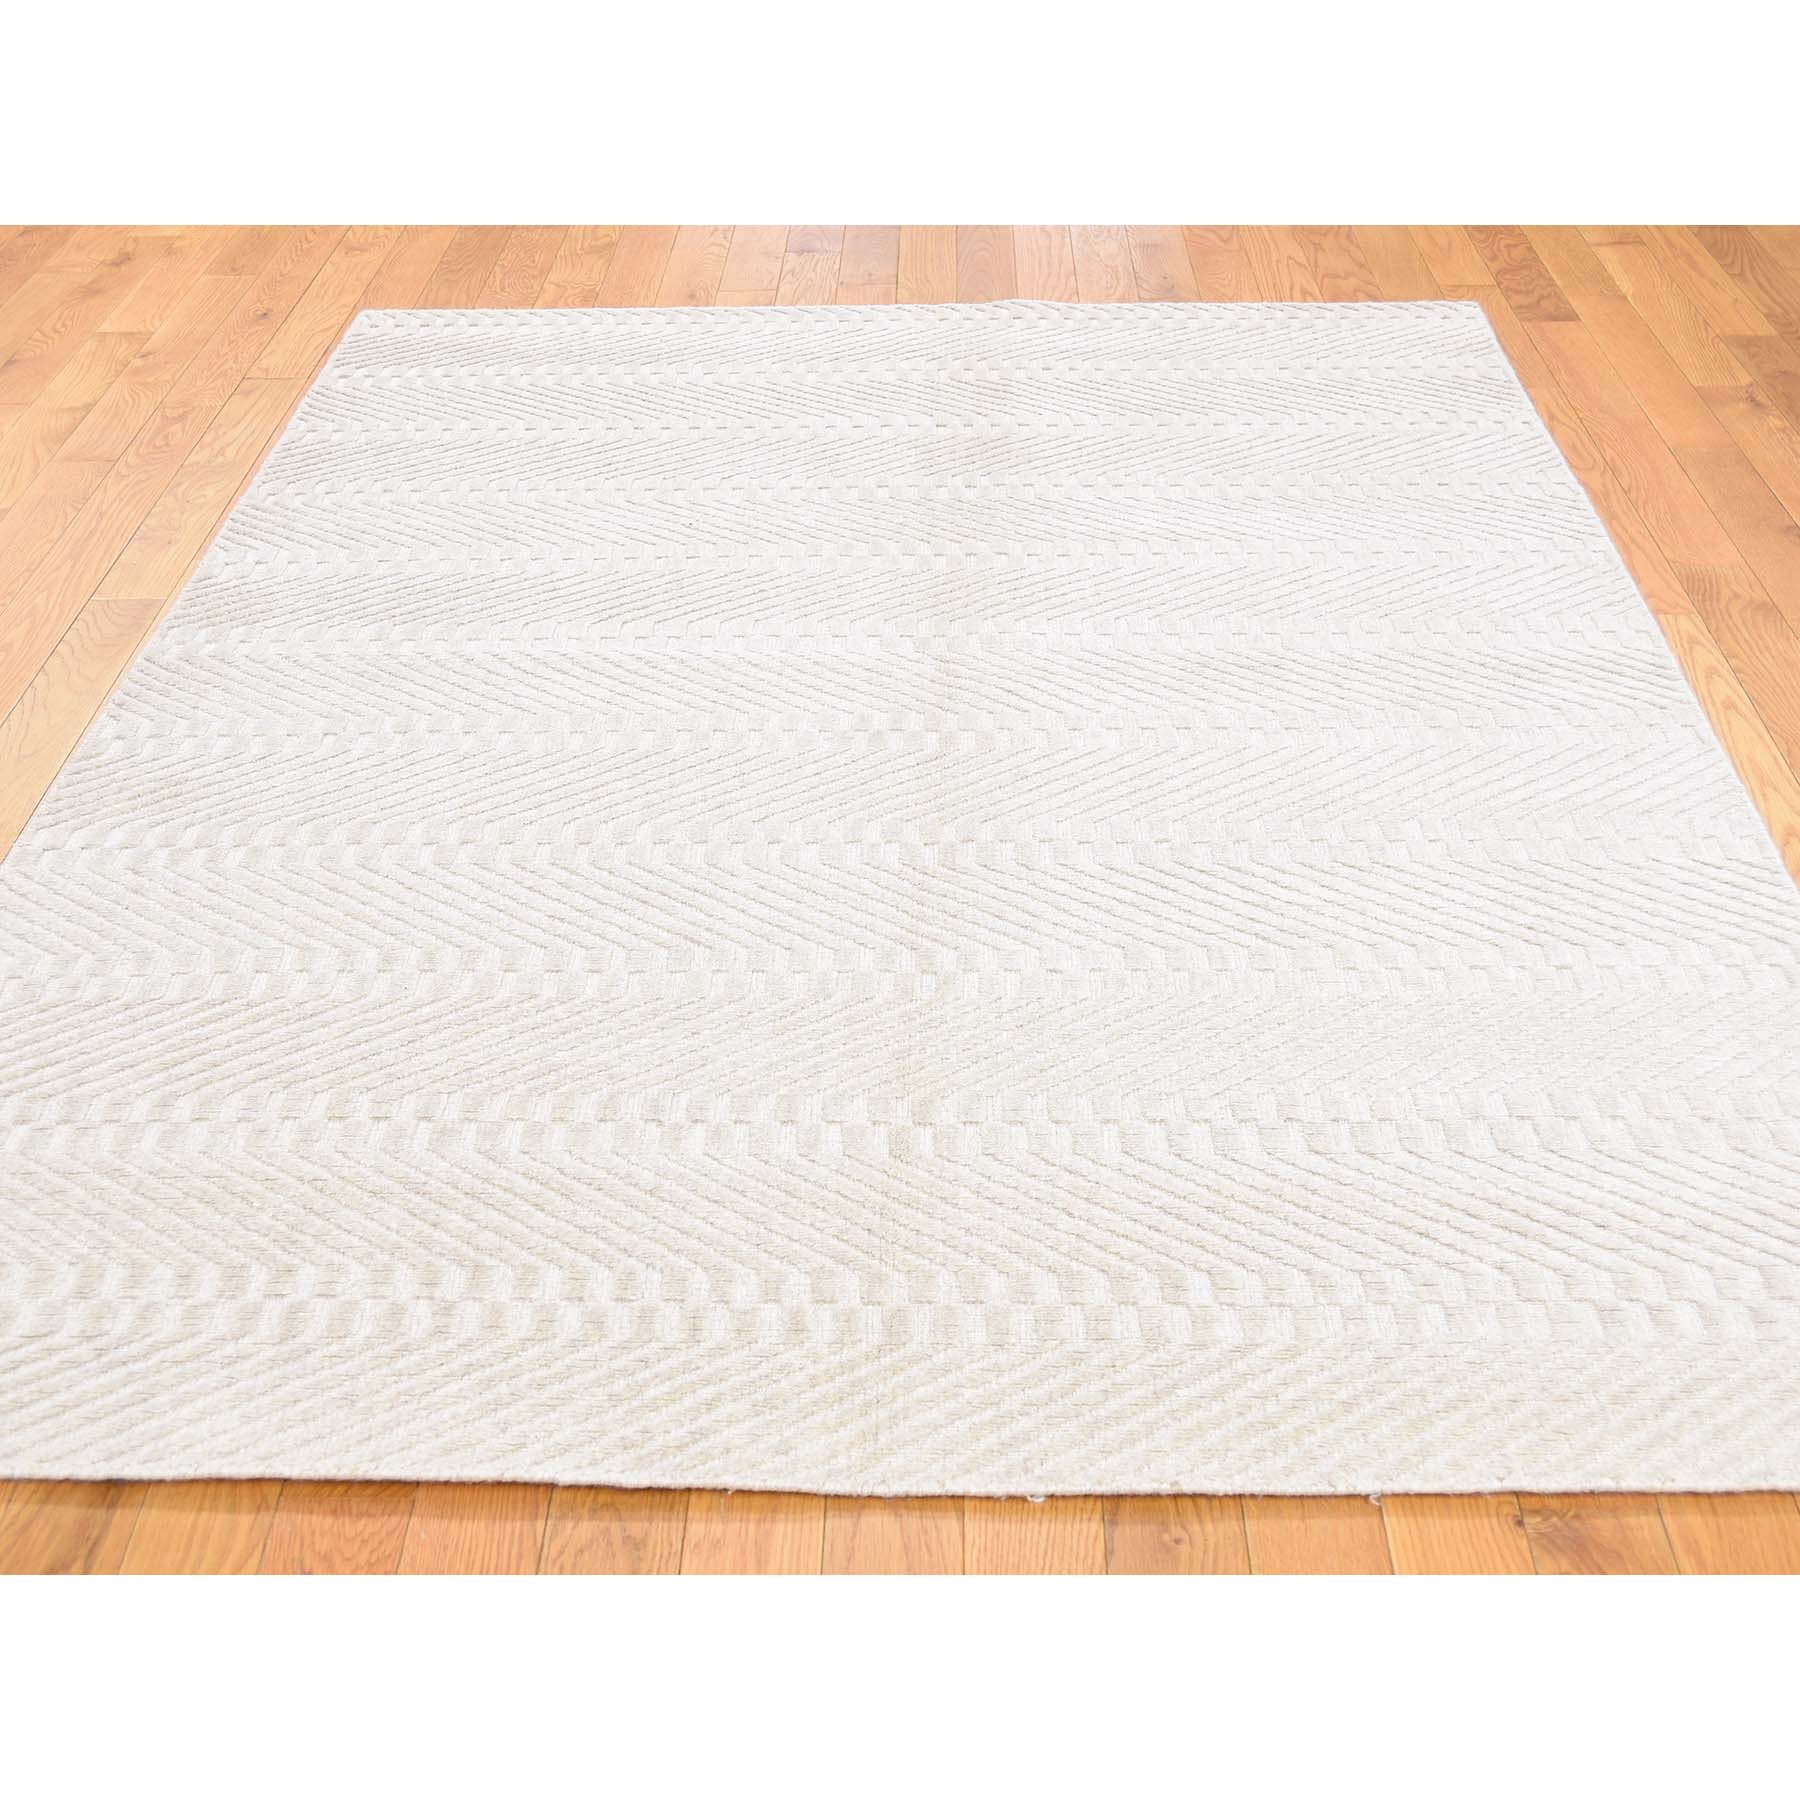 5-x7- Hand-Loomed Tone on Tone Pure Wool Oriental Rug